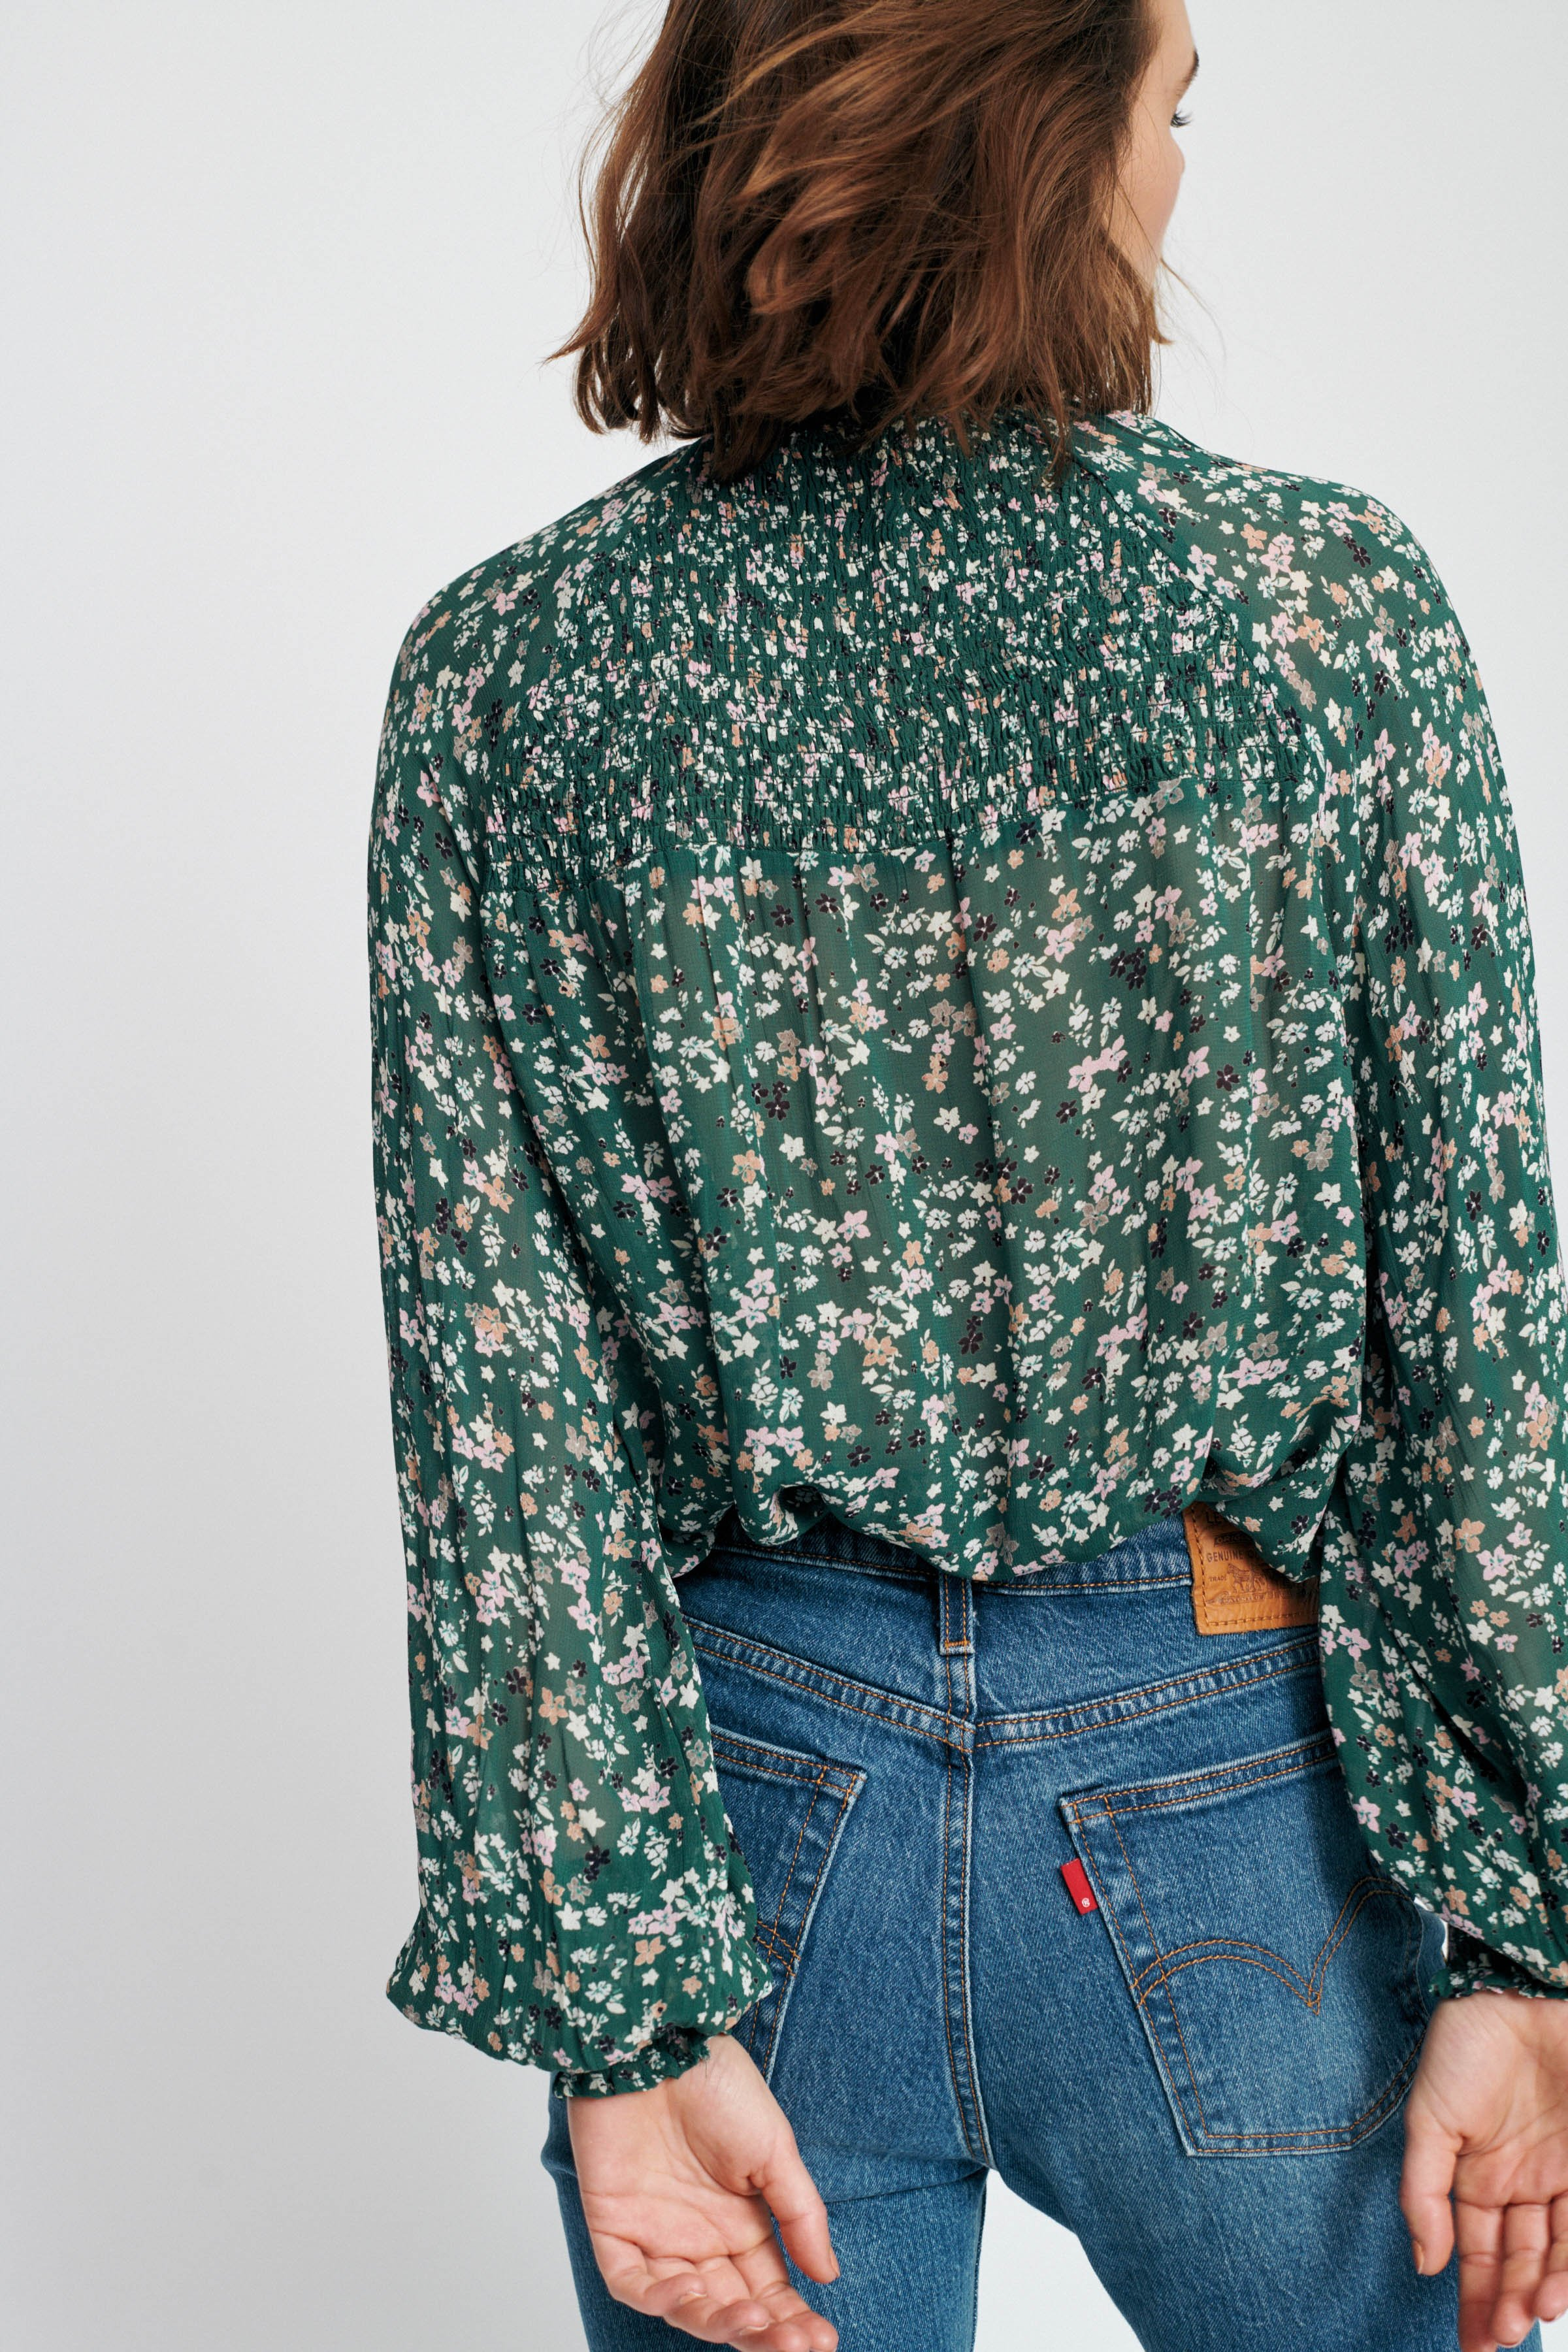 Warm Green Ditsy Flowers Top – Køb Warm Green Ditsy Flowers Top fra str. 32-44 her